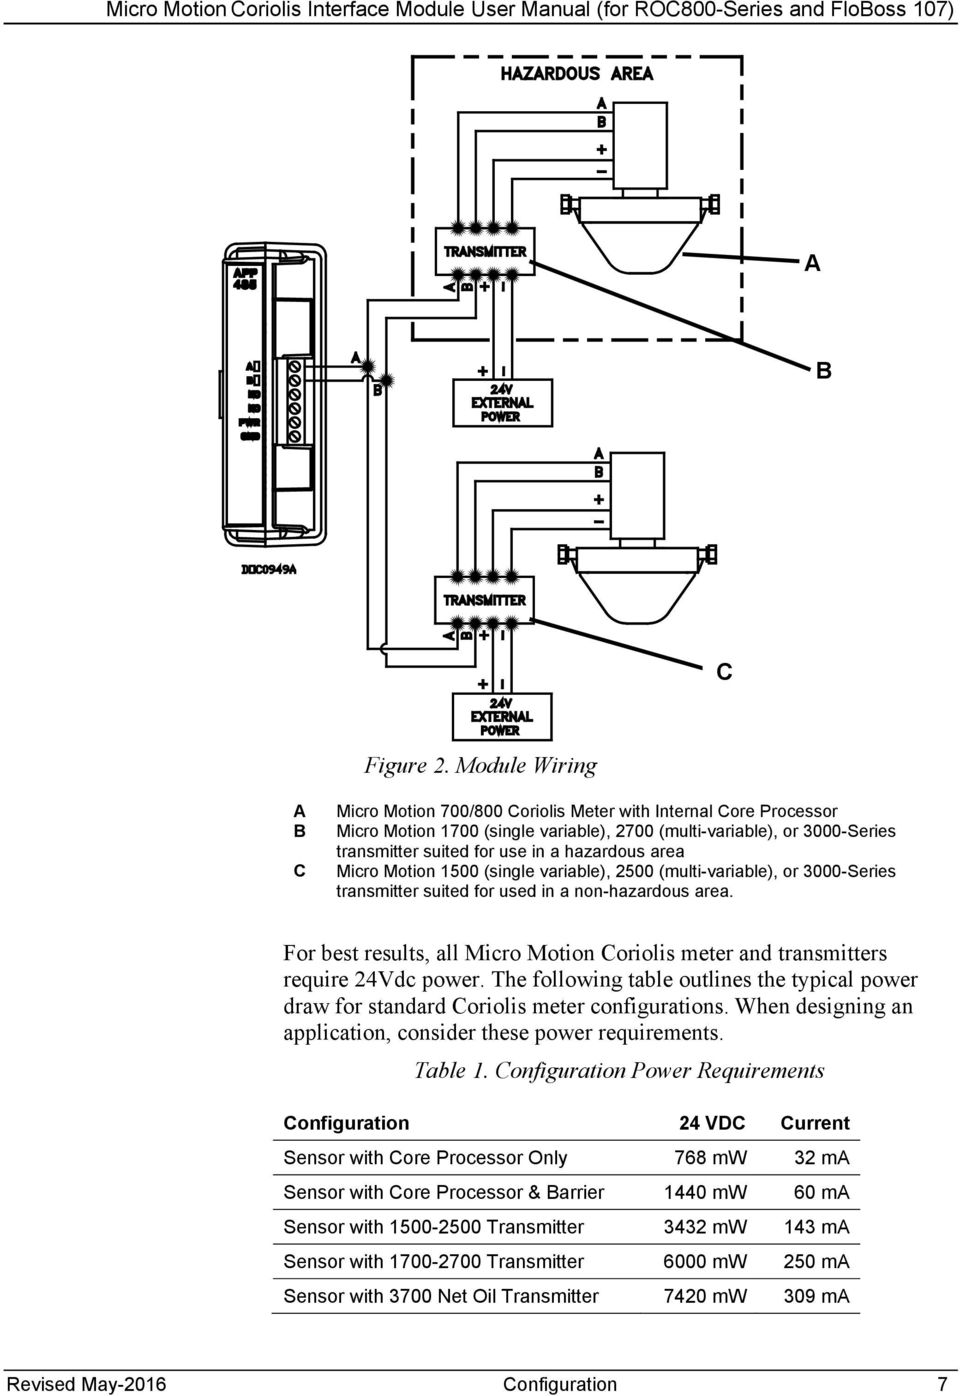 micro motion wiring diagram taylor wimpey wiring diagram wiringmicro motion coriolis interface module user manual for roc hazardous area micro motion 1500 single variable fisher salt conductor wiring diagram